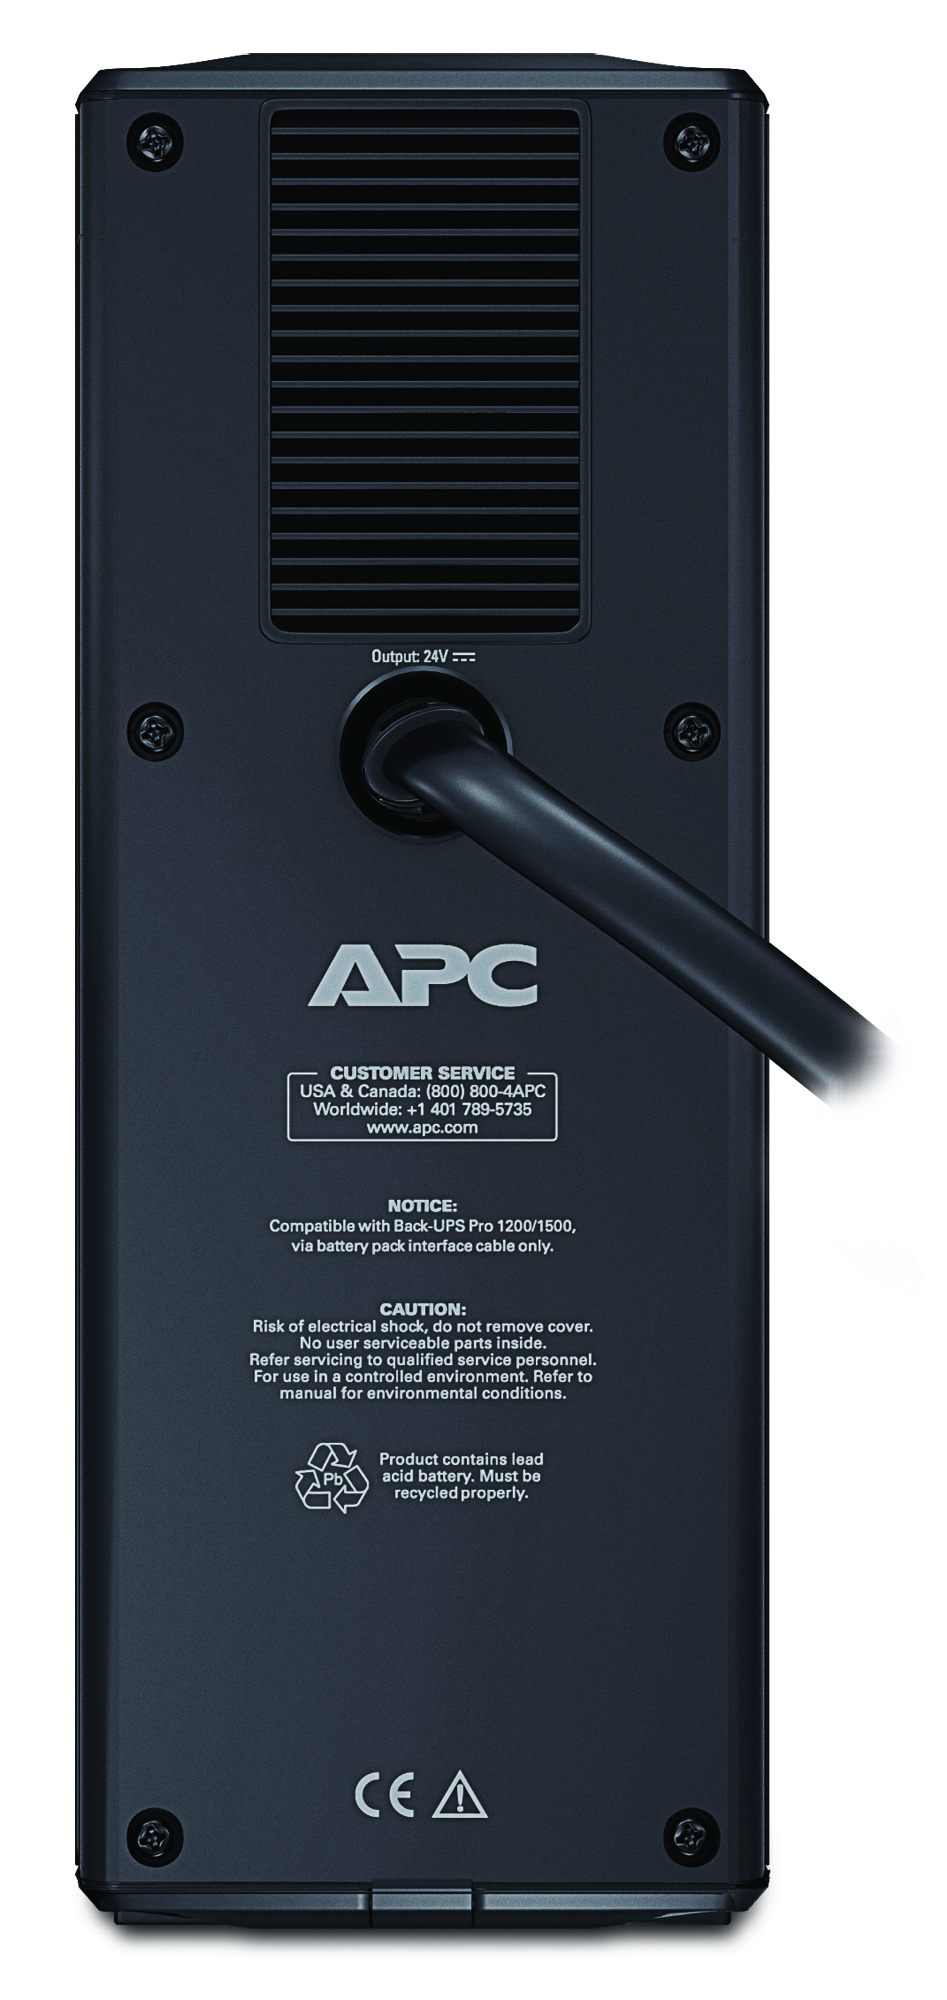 Apc back ups 400 manual ebook coupon codes choice image free apc by schneider electric back ups pro external battery pack for apc by schneider electric back fandeluxe Gallery